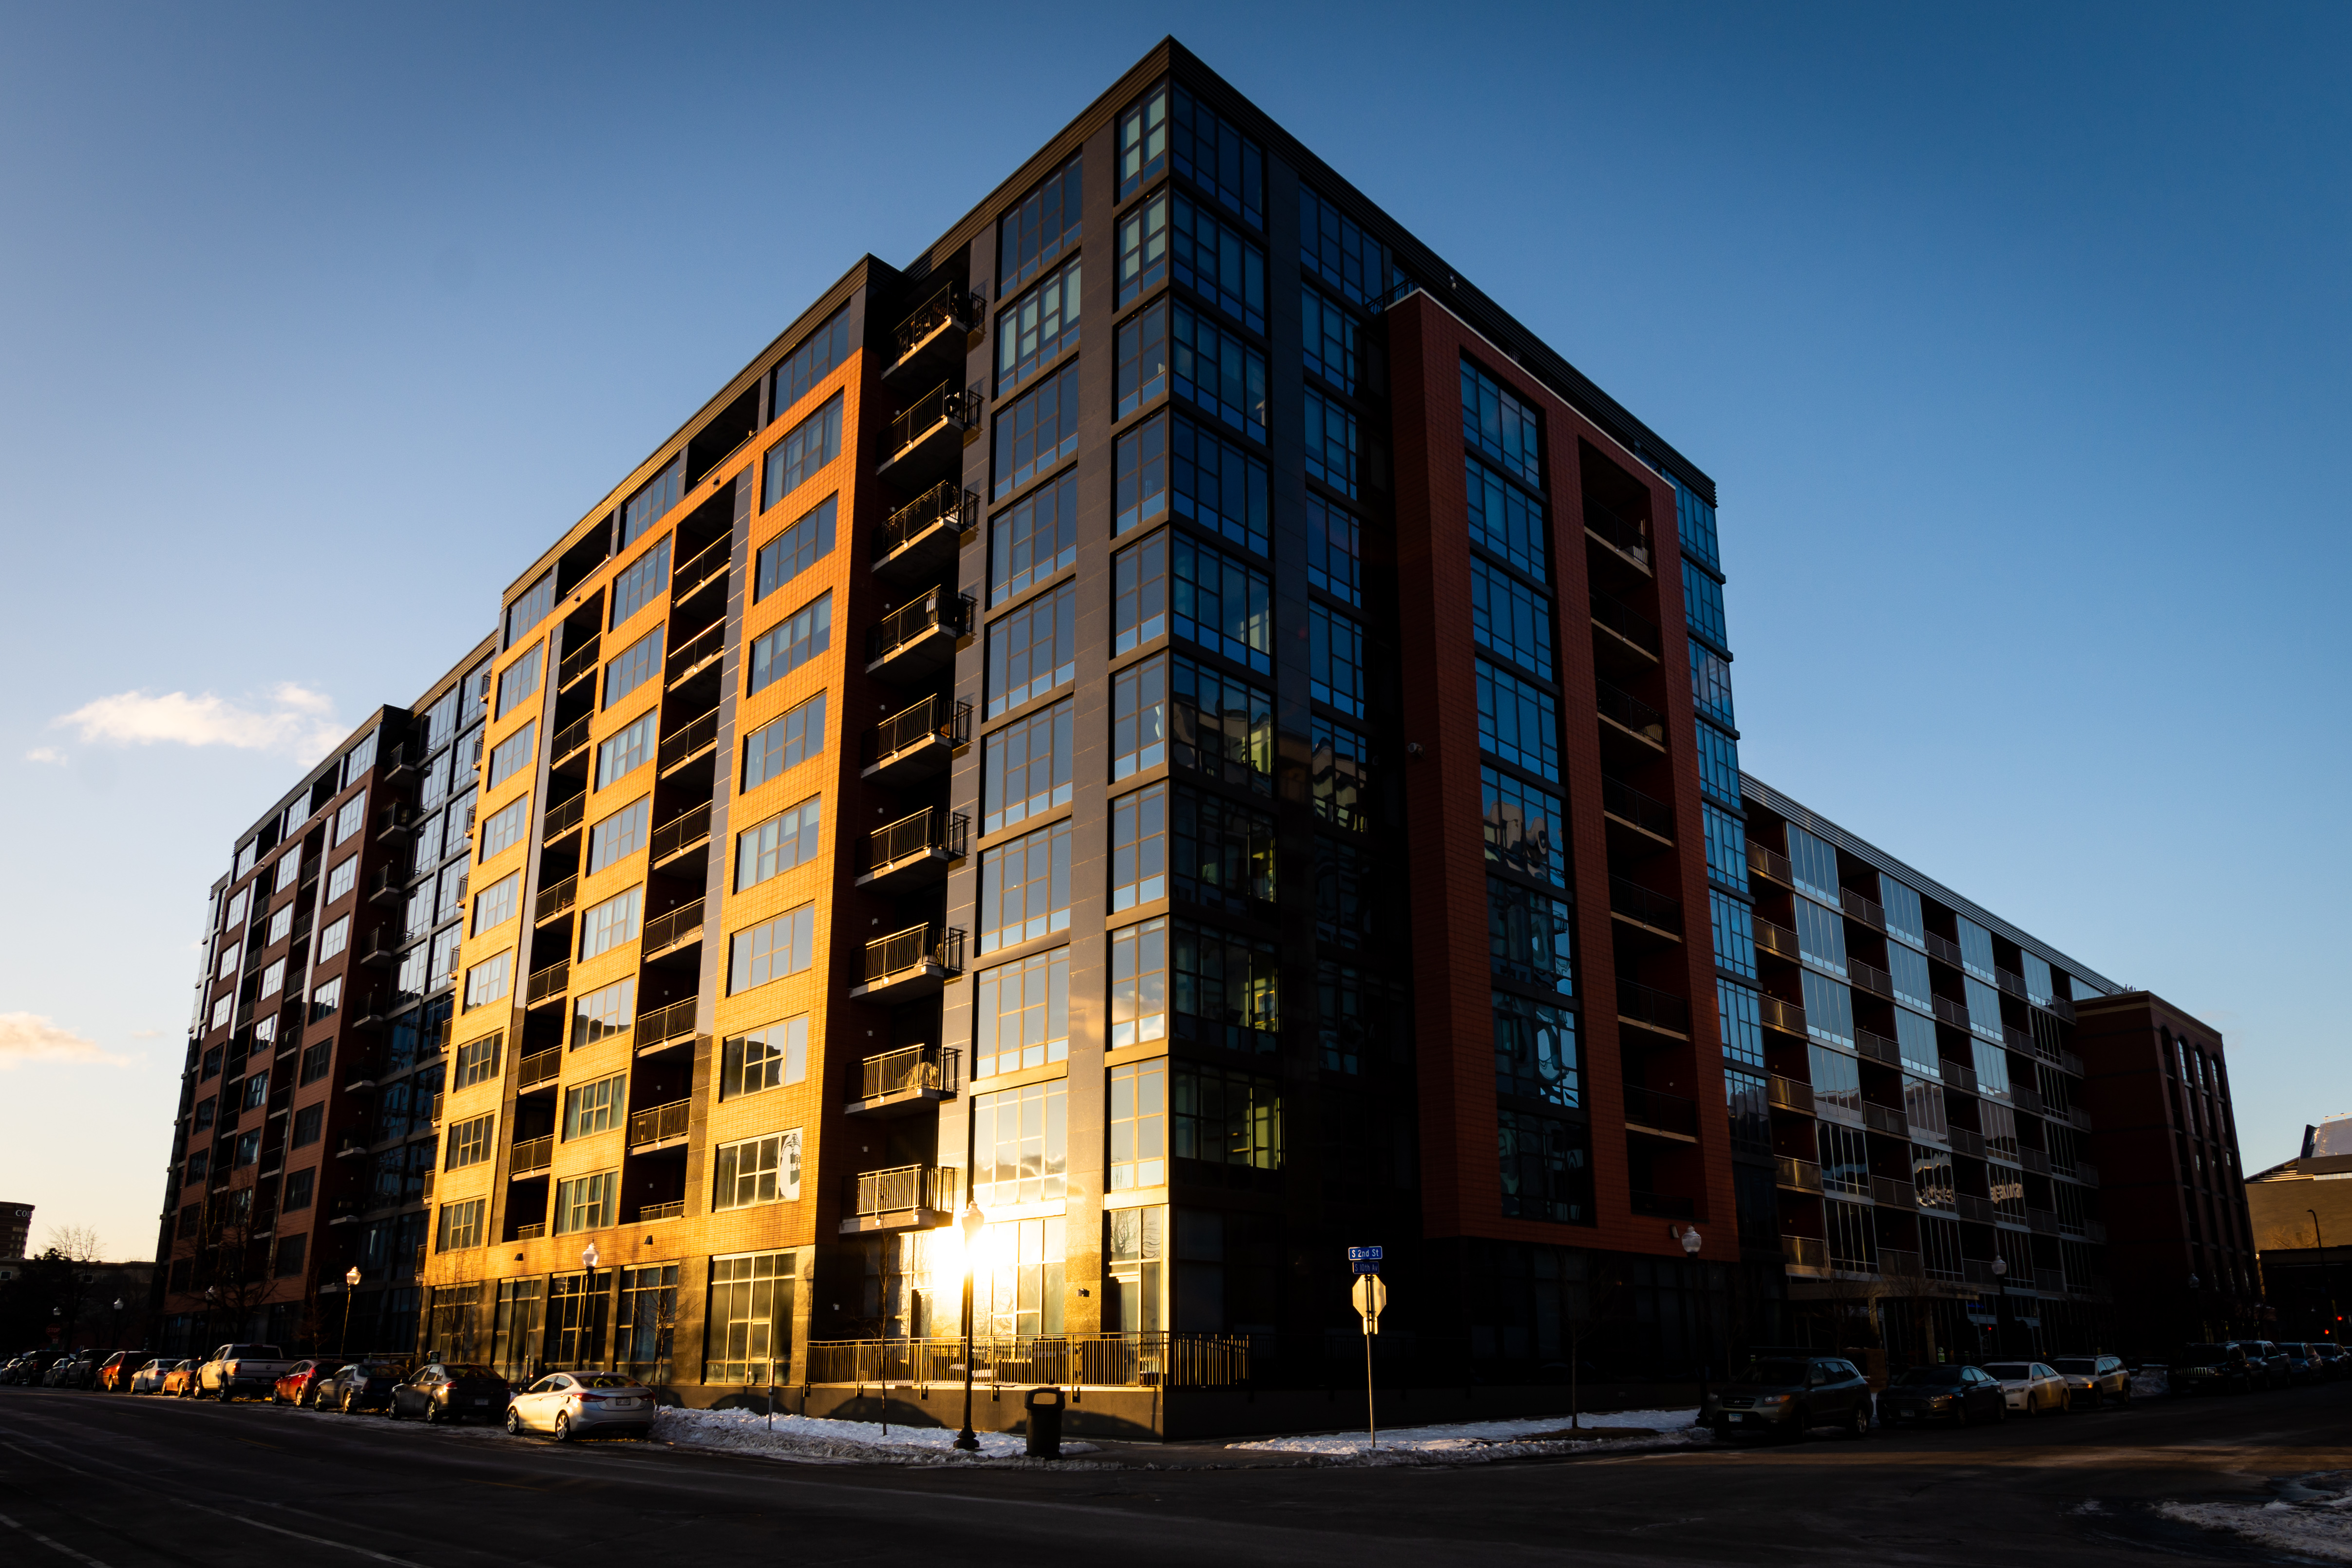 Condos in the Morning, Architecture, Building, City, Condos, HQ Photo